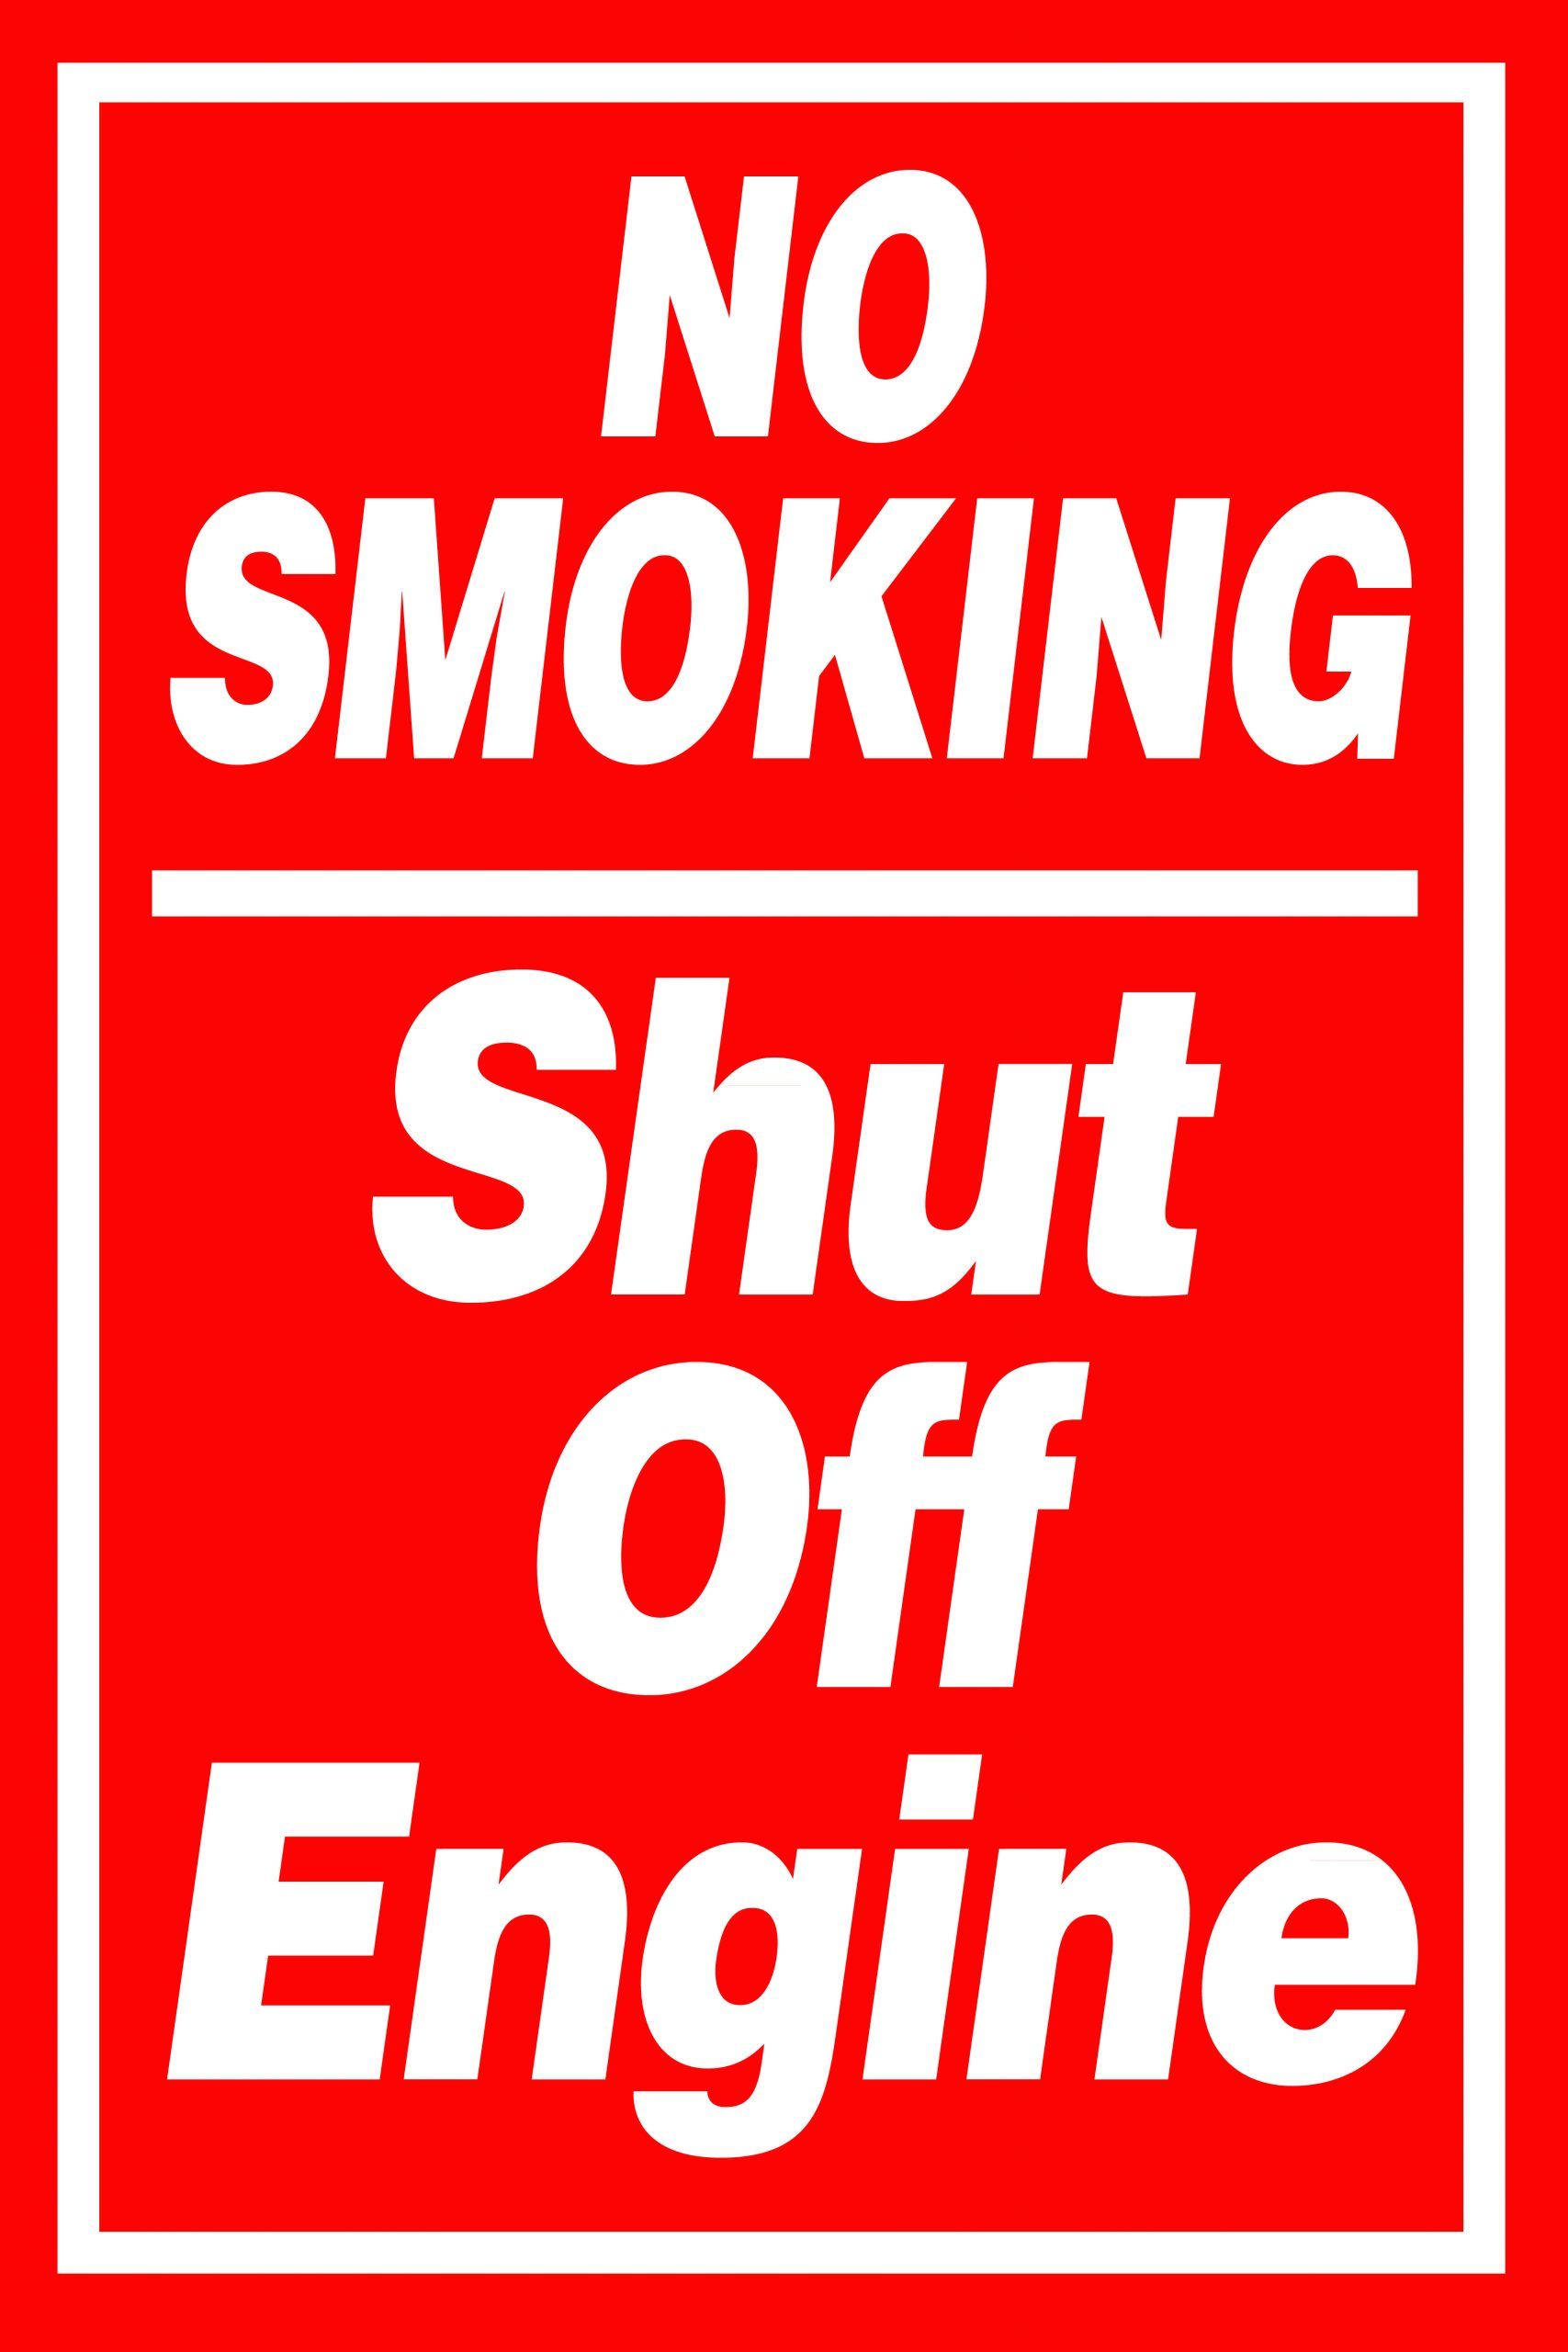 no smoking shut off engine